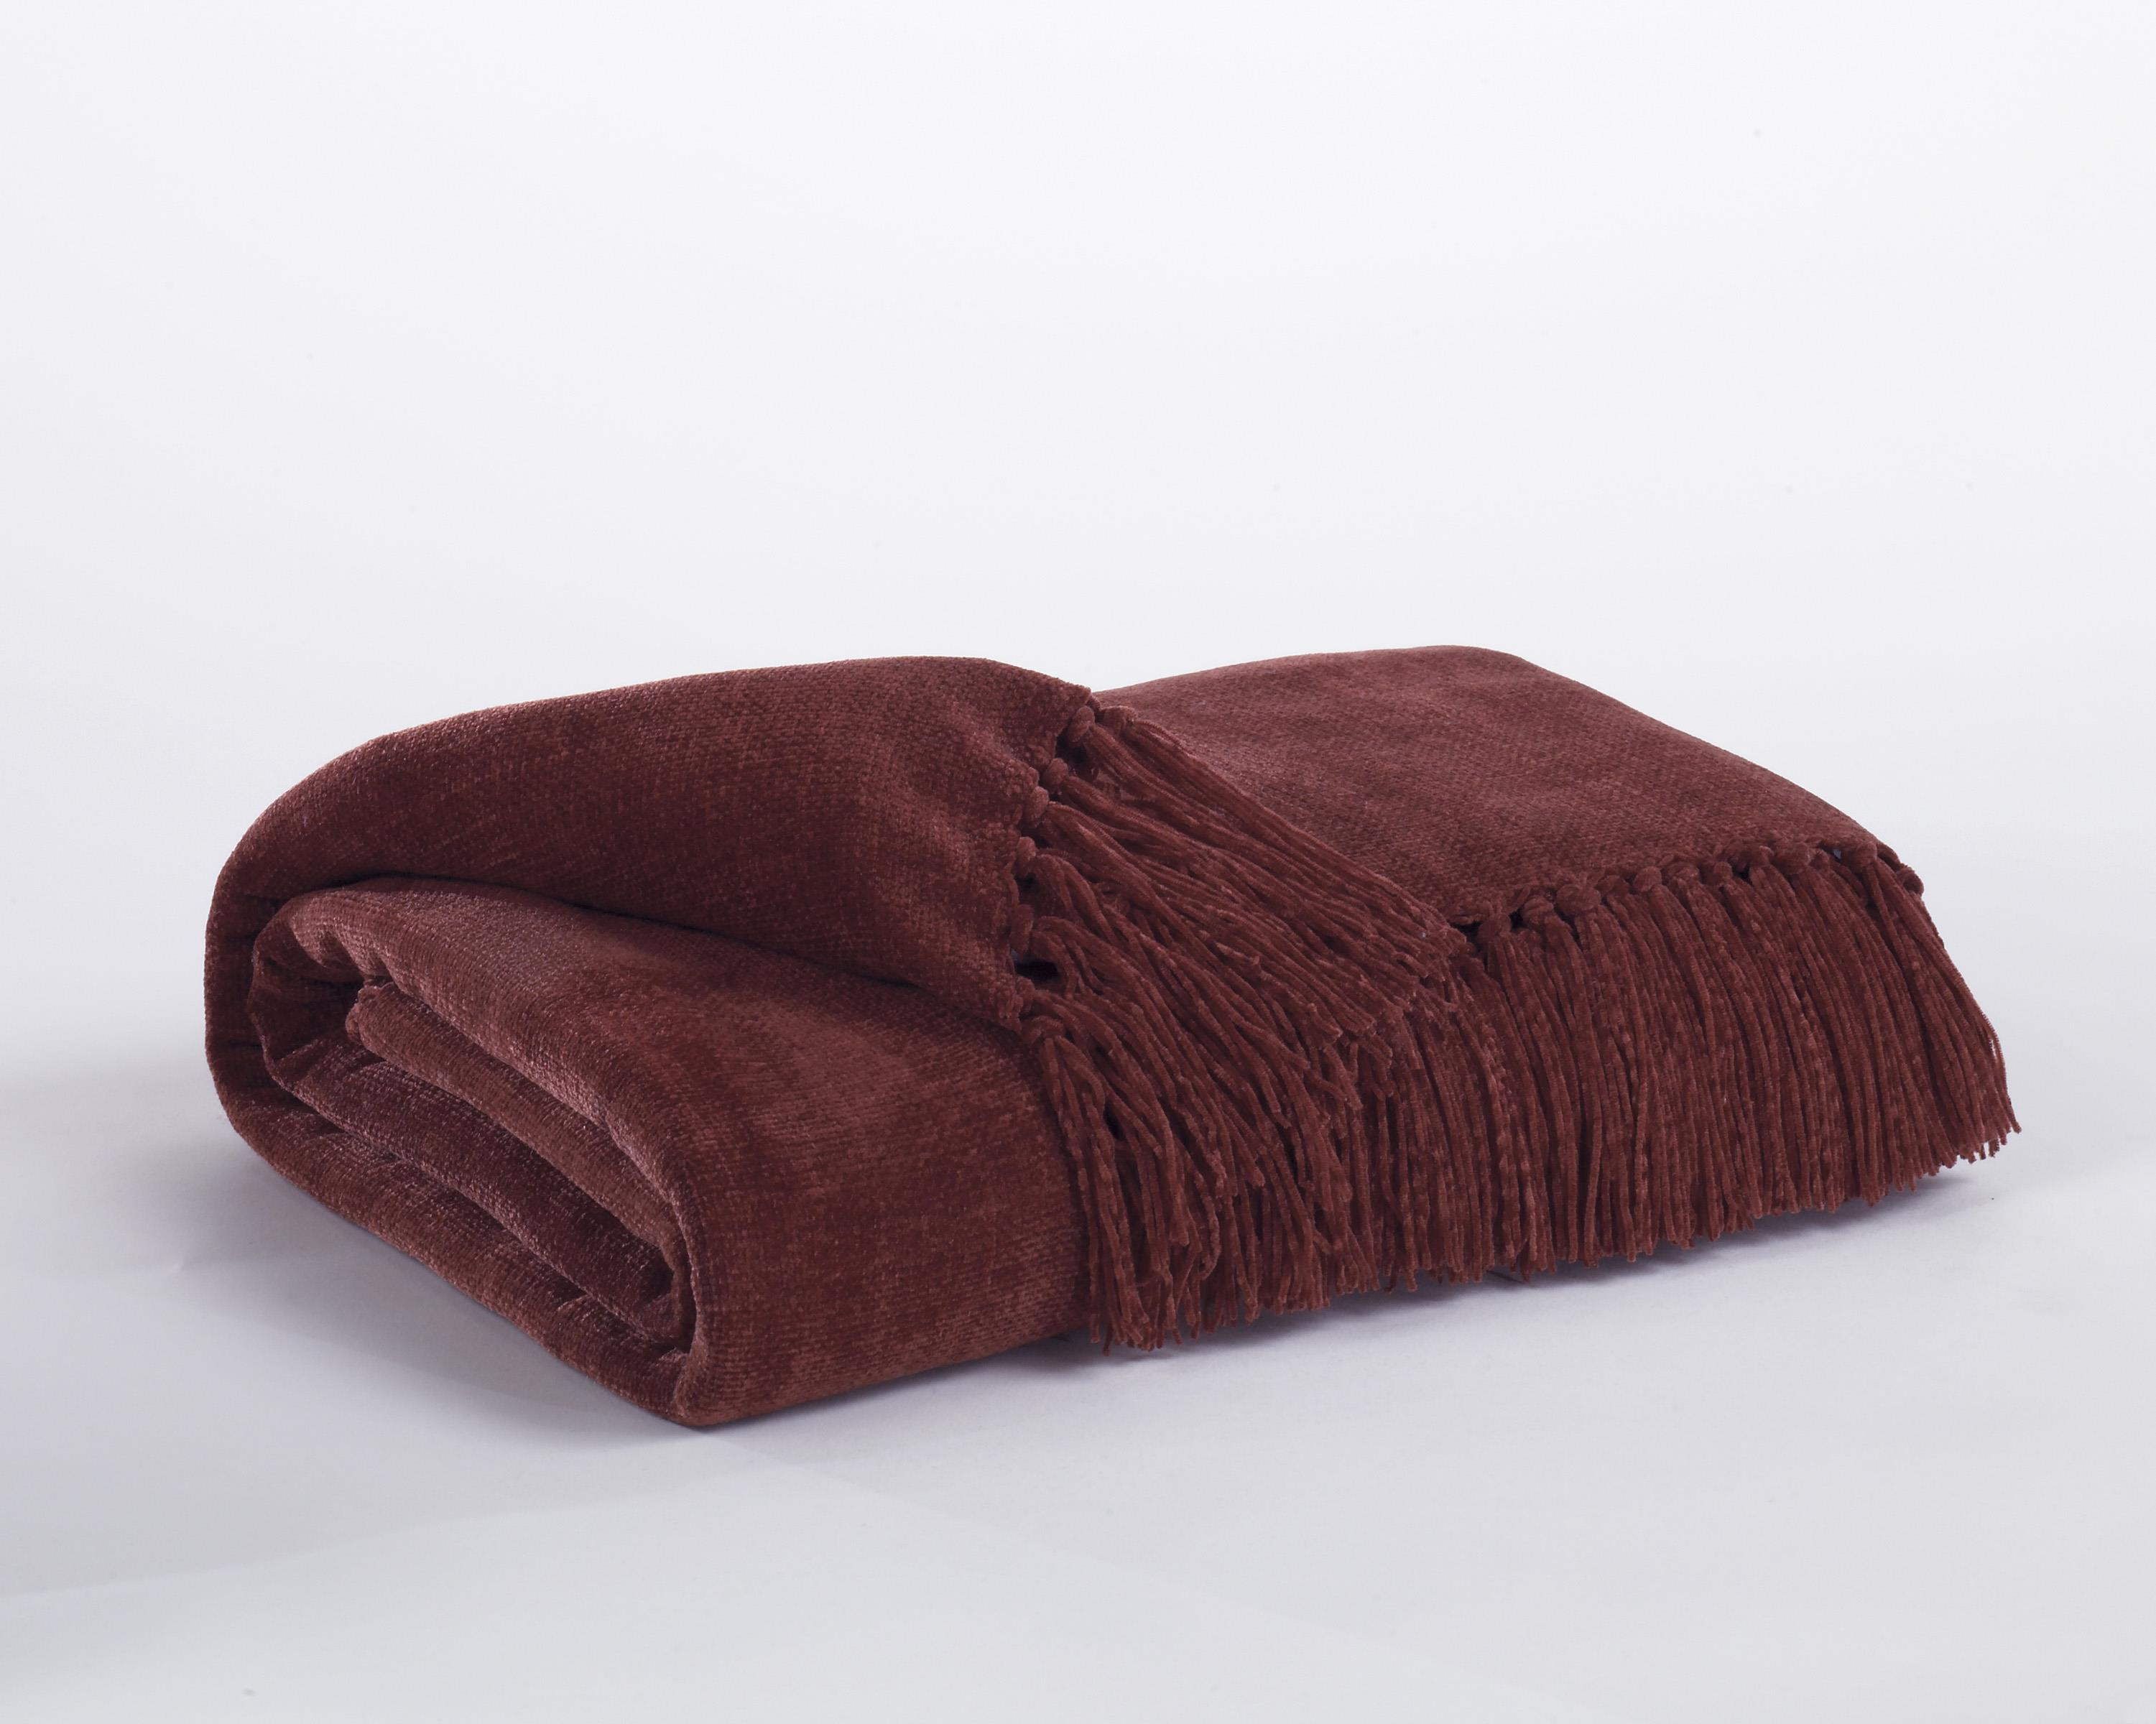 Signature Design by Ashley Throws Revere - Burgundy Throw - Item Number: A1000032T